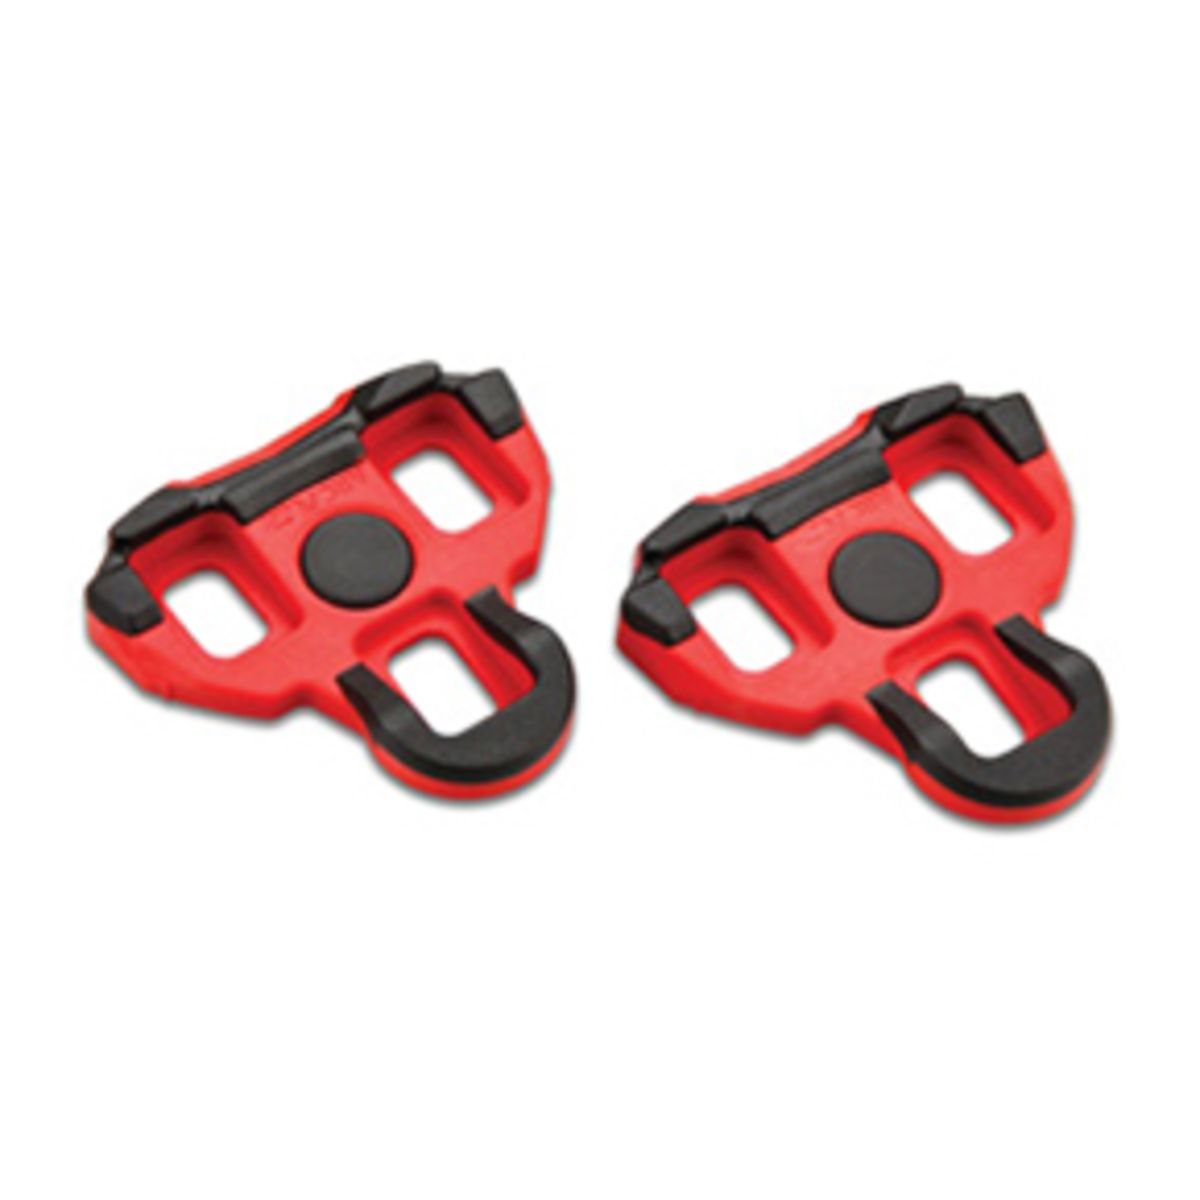 Garmin cleats for Vector pedals | Pedal cleats